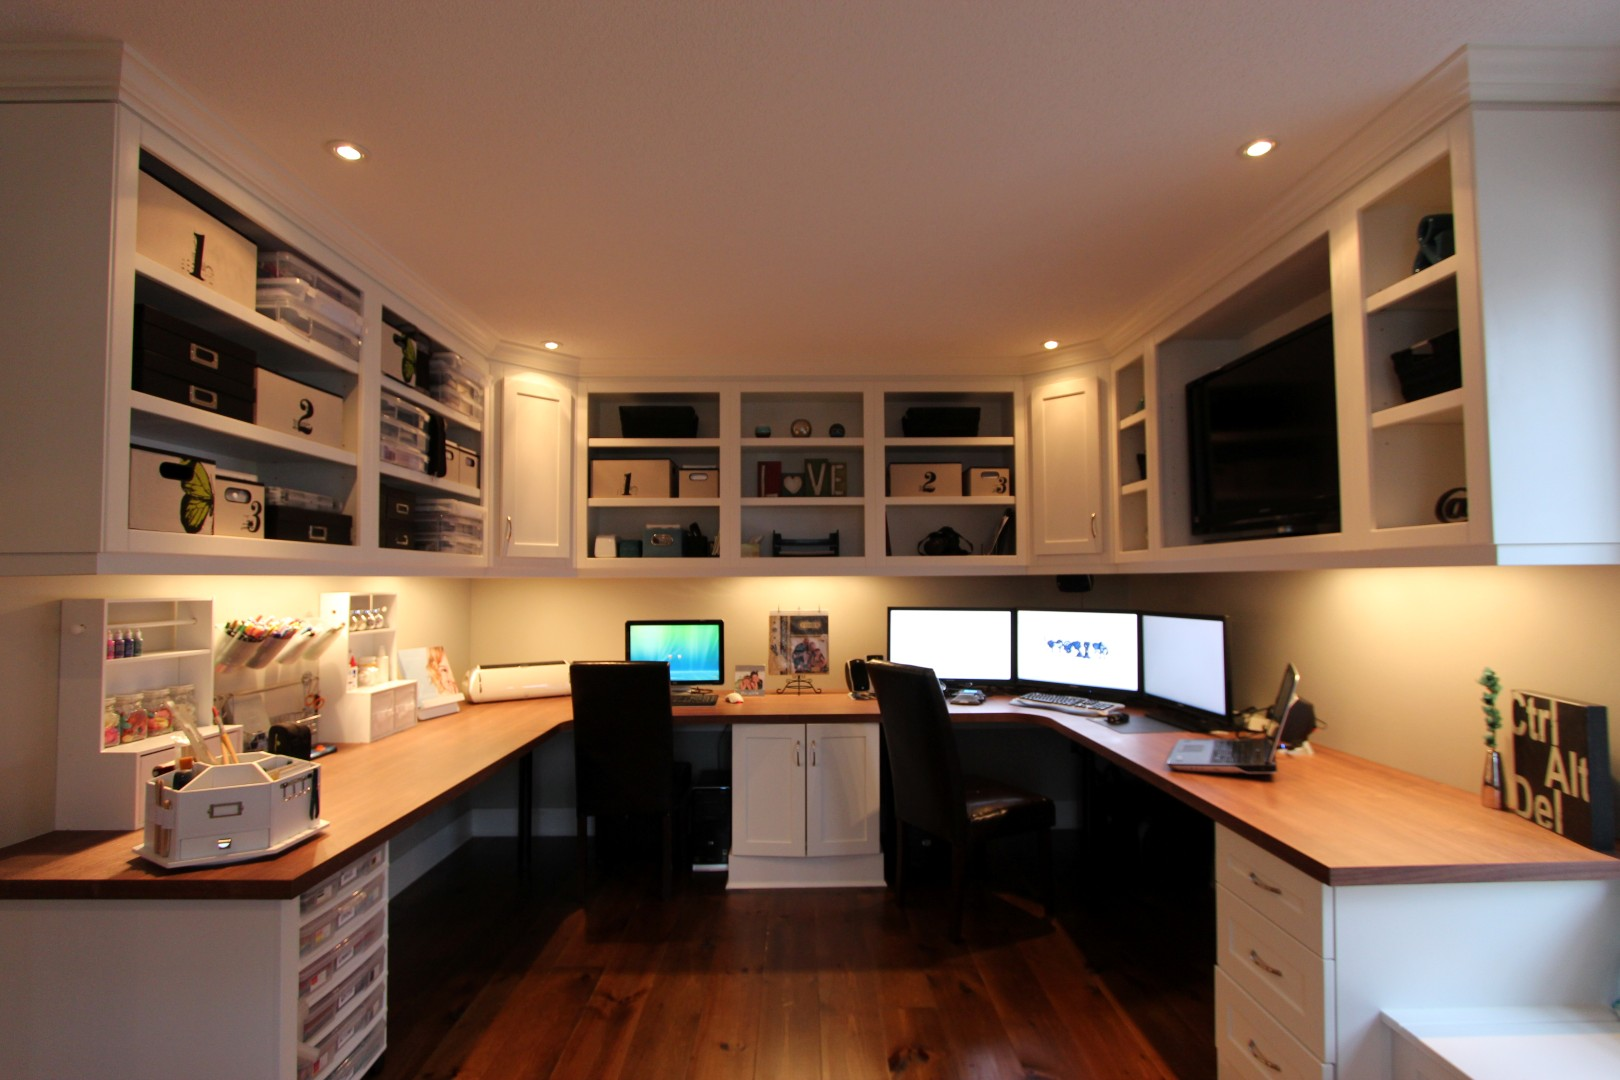 Tremendous Inspirational Home Office Ideas Officescene Largest Home Design Picture Inspirations Pitcheantrous